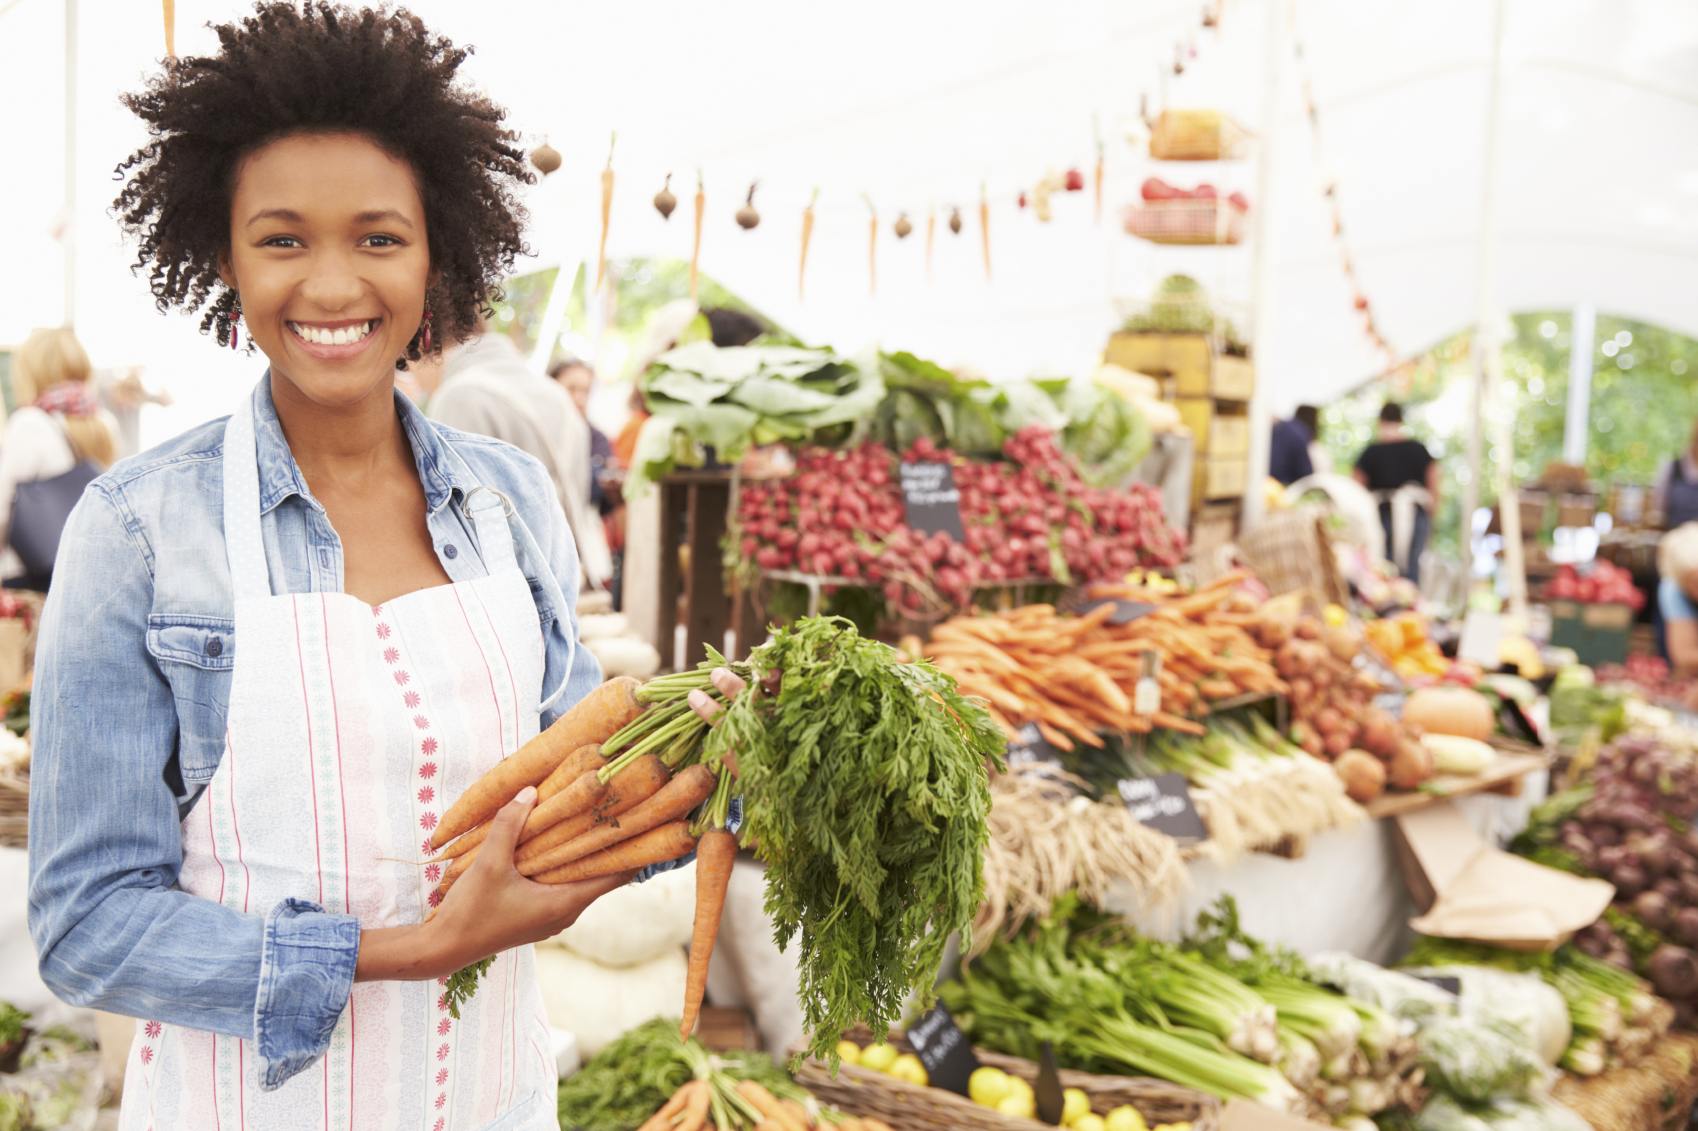 Find A Market - UVFM has 10 market locations, spanning several days of the week, throughout the East Bay and South Bay. Each one is unique to its community! Find the one that is right for you.